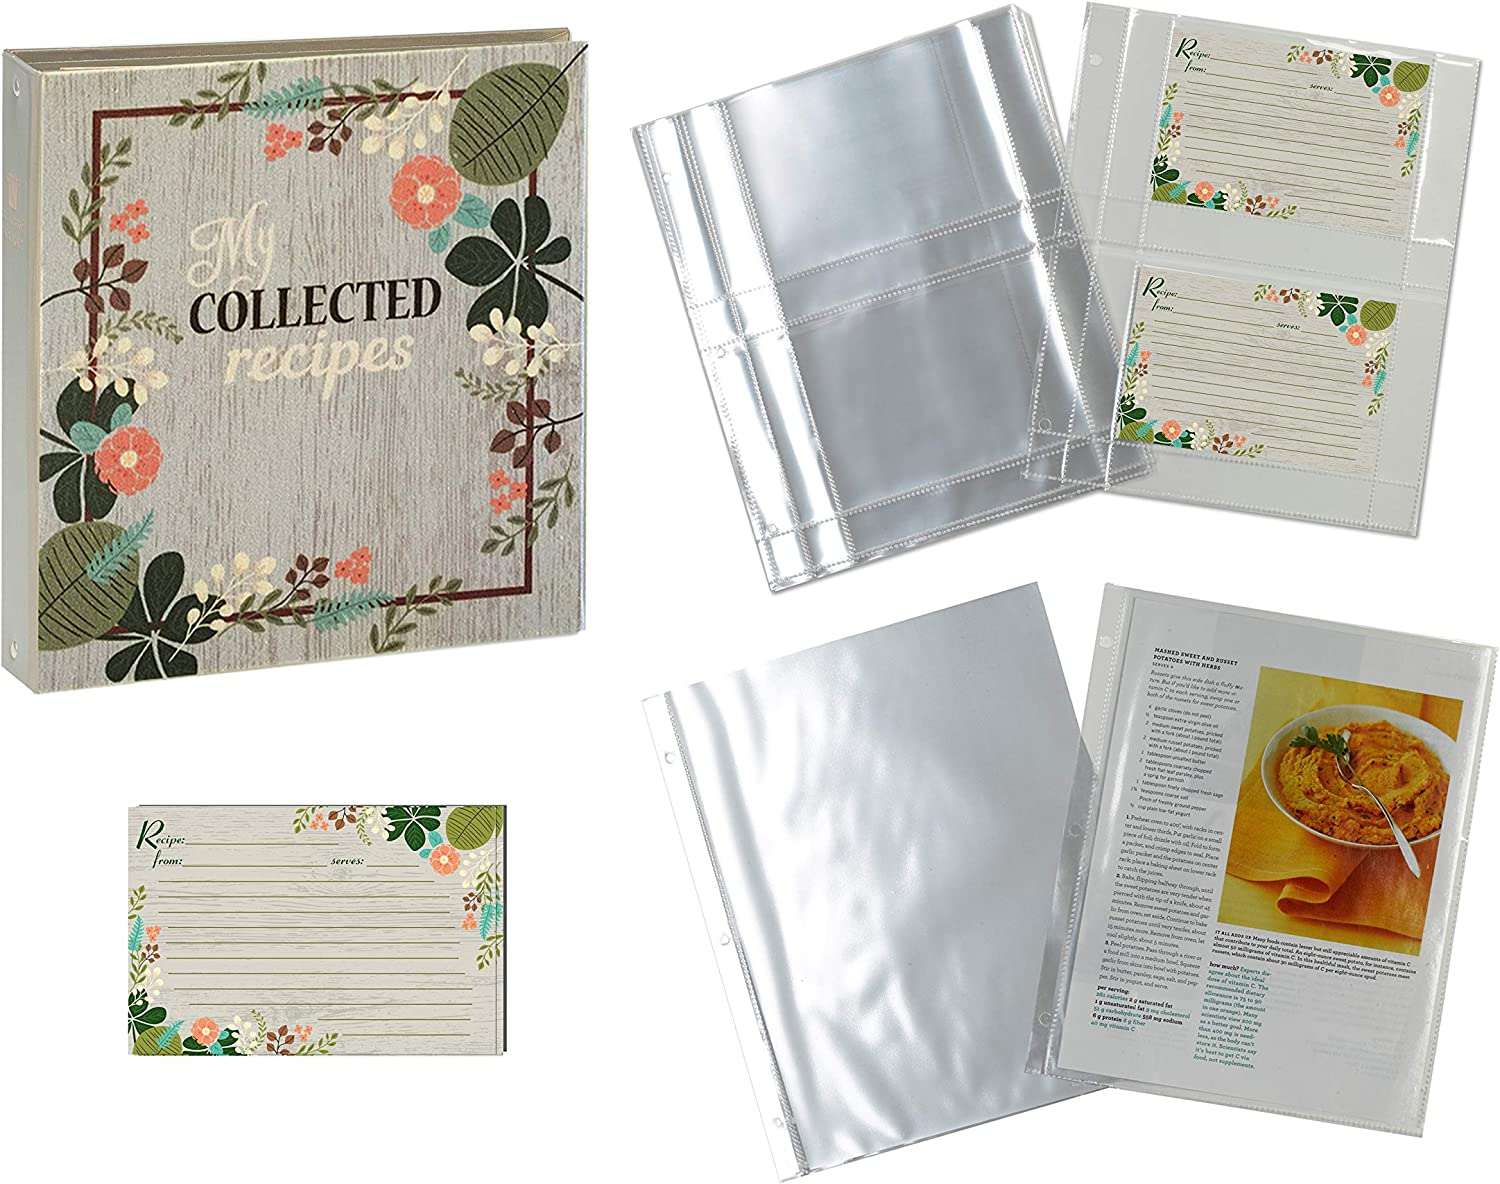 Meadowsweet Kitchens Recipe Binder Organizer Gift Set, Mother's Day, Wedding Gift, Housewarming, Family Recipe Book with Recipe Cards and Plastic Protector Sheets (Vintage Flowers)